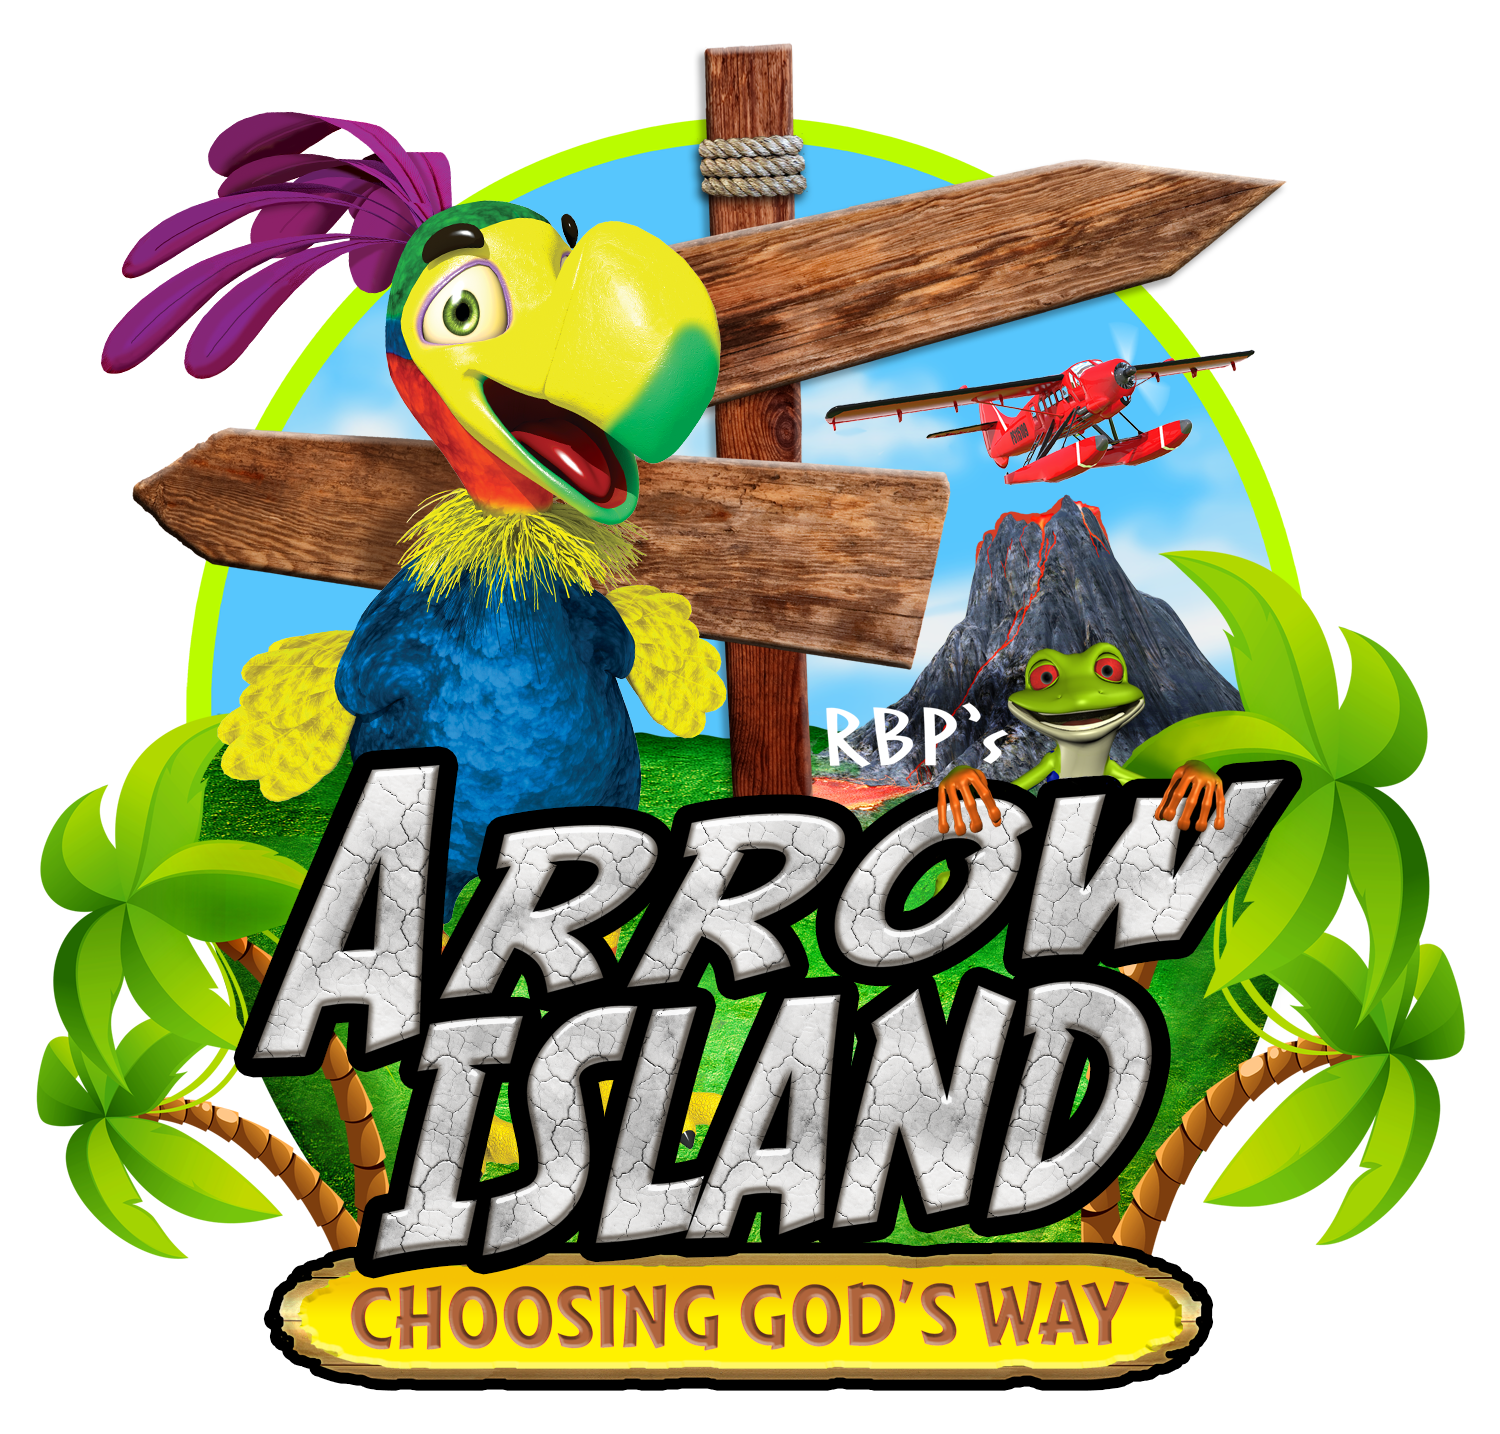 RBP's 2014 VBS Arrow Island